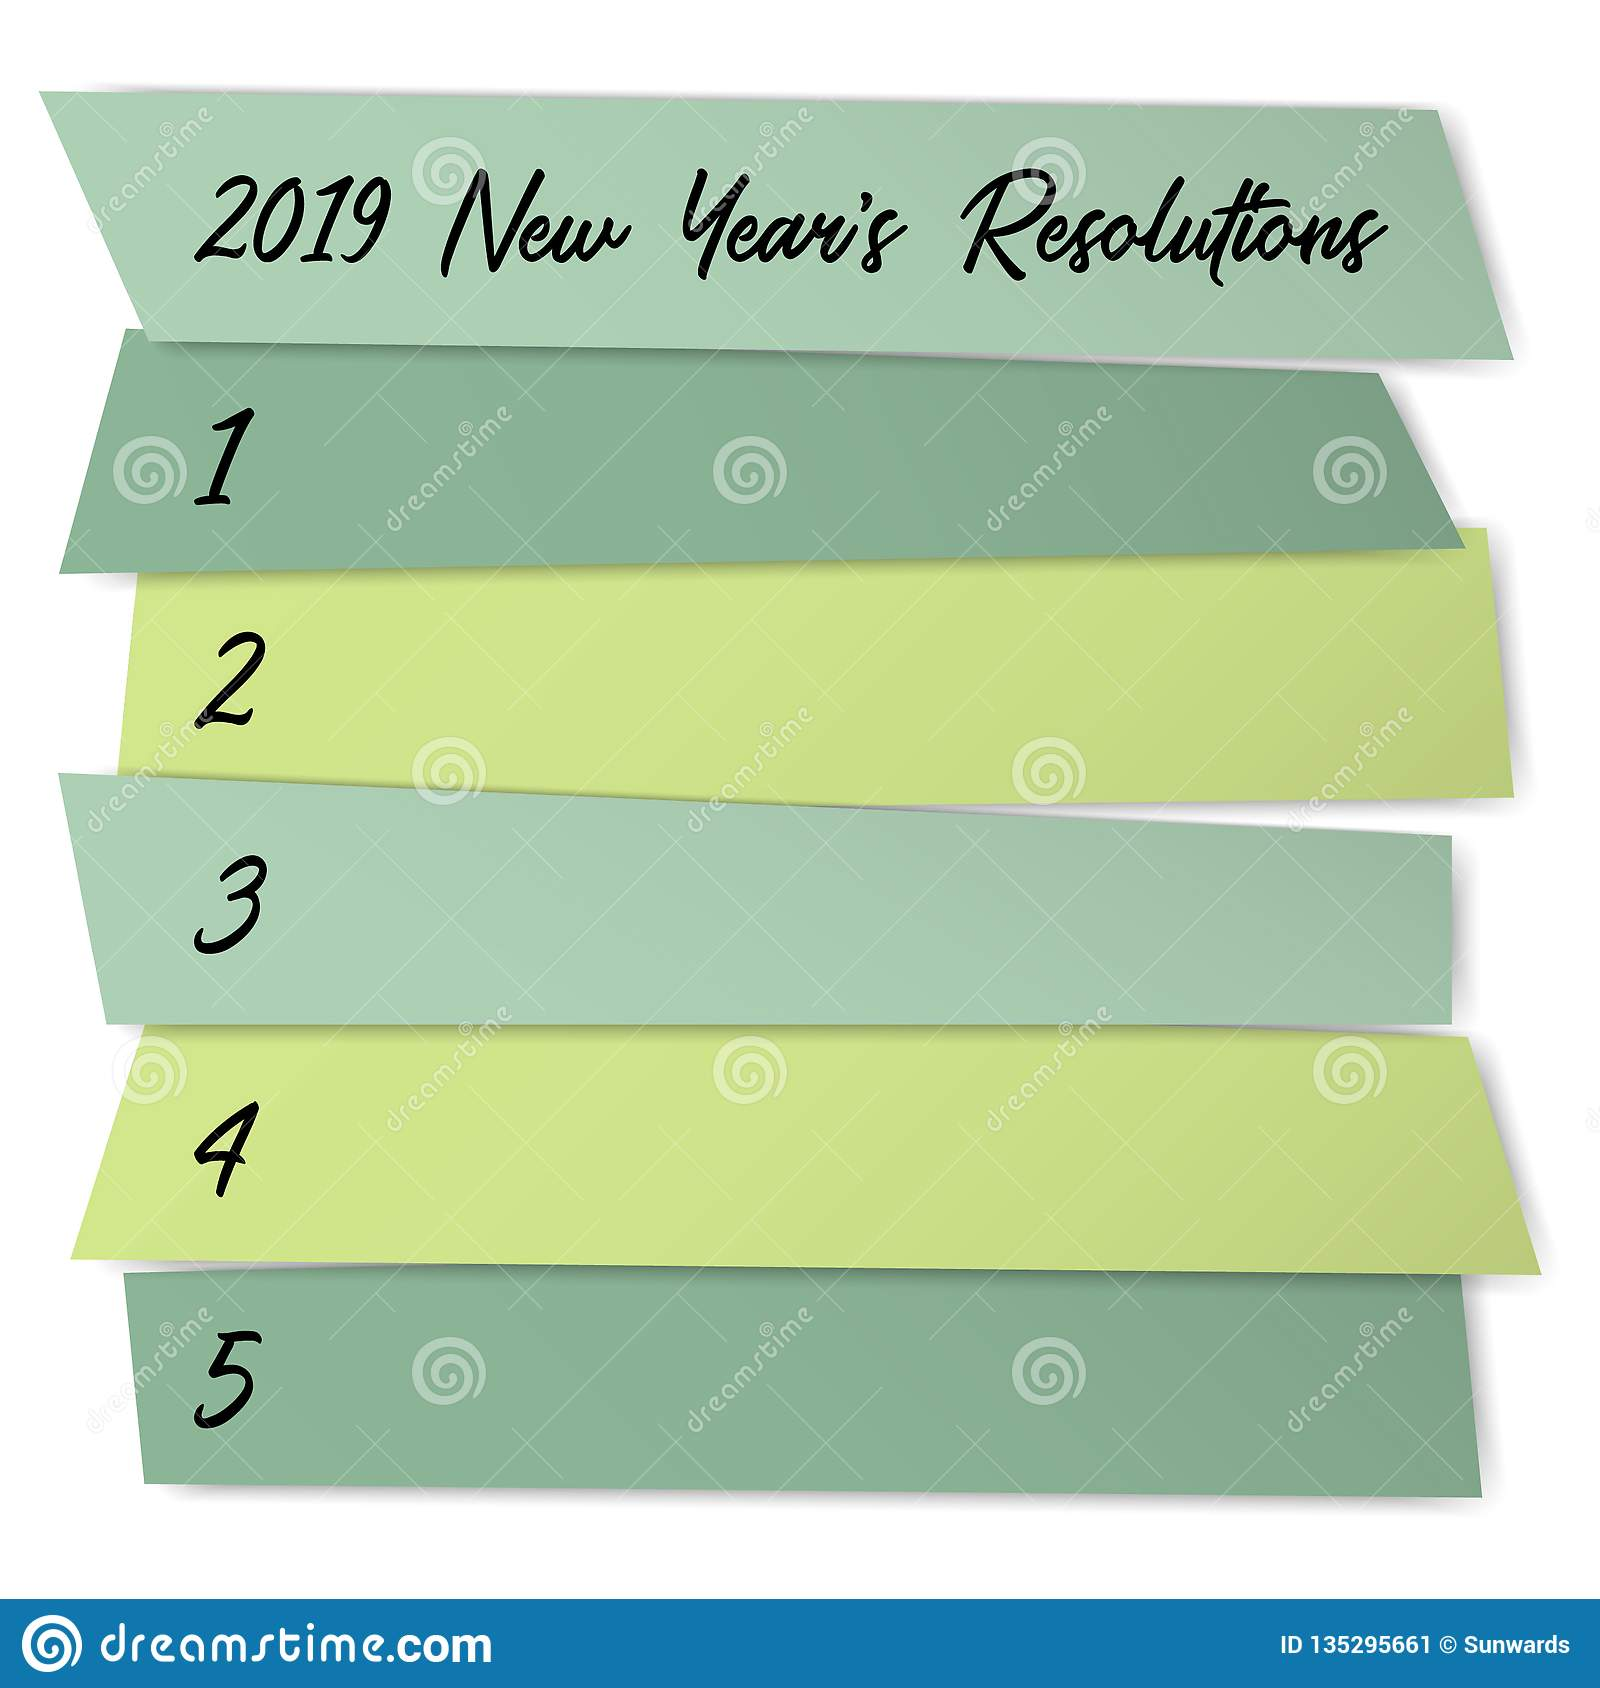 New Year Resolutions Challenge Vector Template. Stock